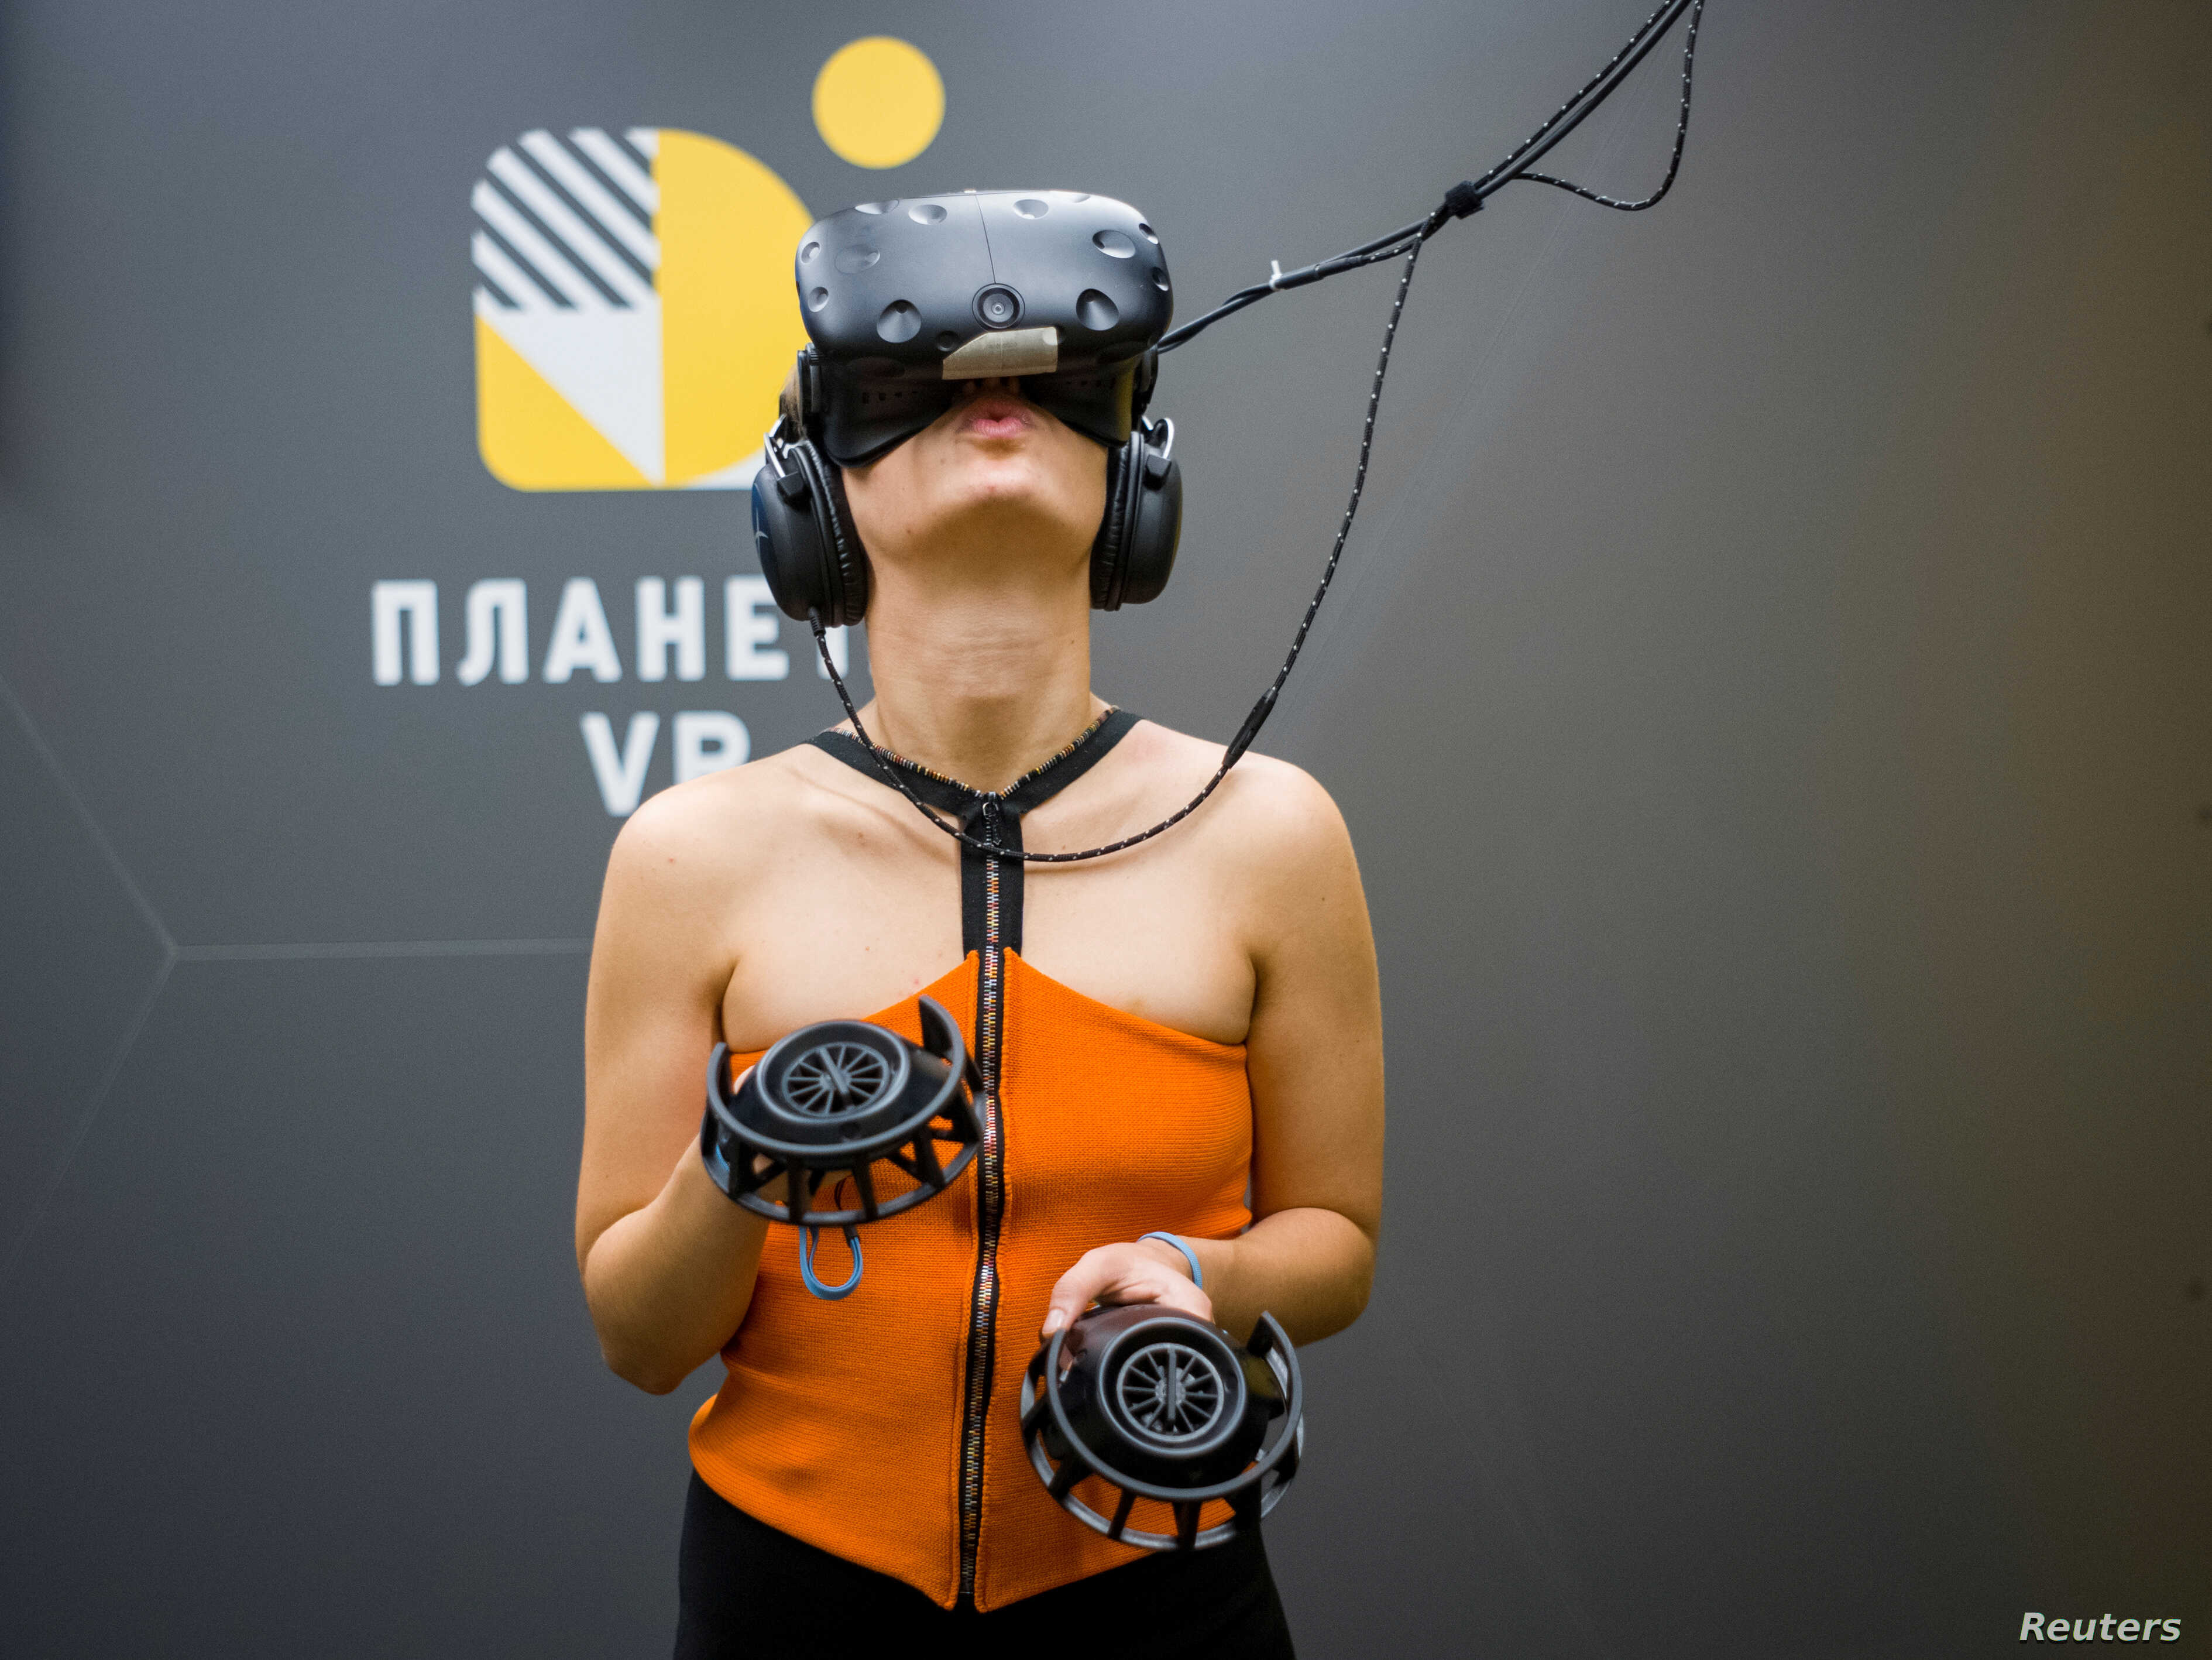 A visitor uses virtual reality glasses during the presentation of a simulator showing the 2013-14 demonstration in Ukraine, when dozens of protesters were killed in the final moments of Viktor Yanukovich's rule, in Kyiv, Ukraine Sept. 12, 2018.